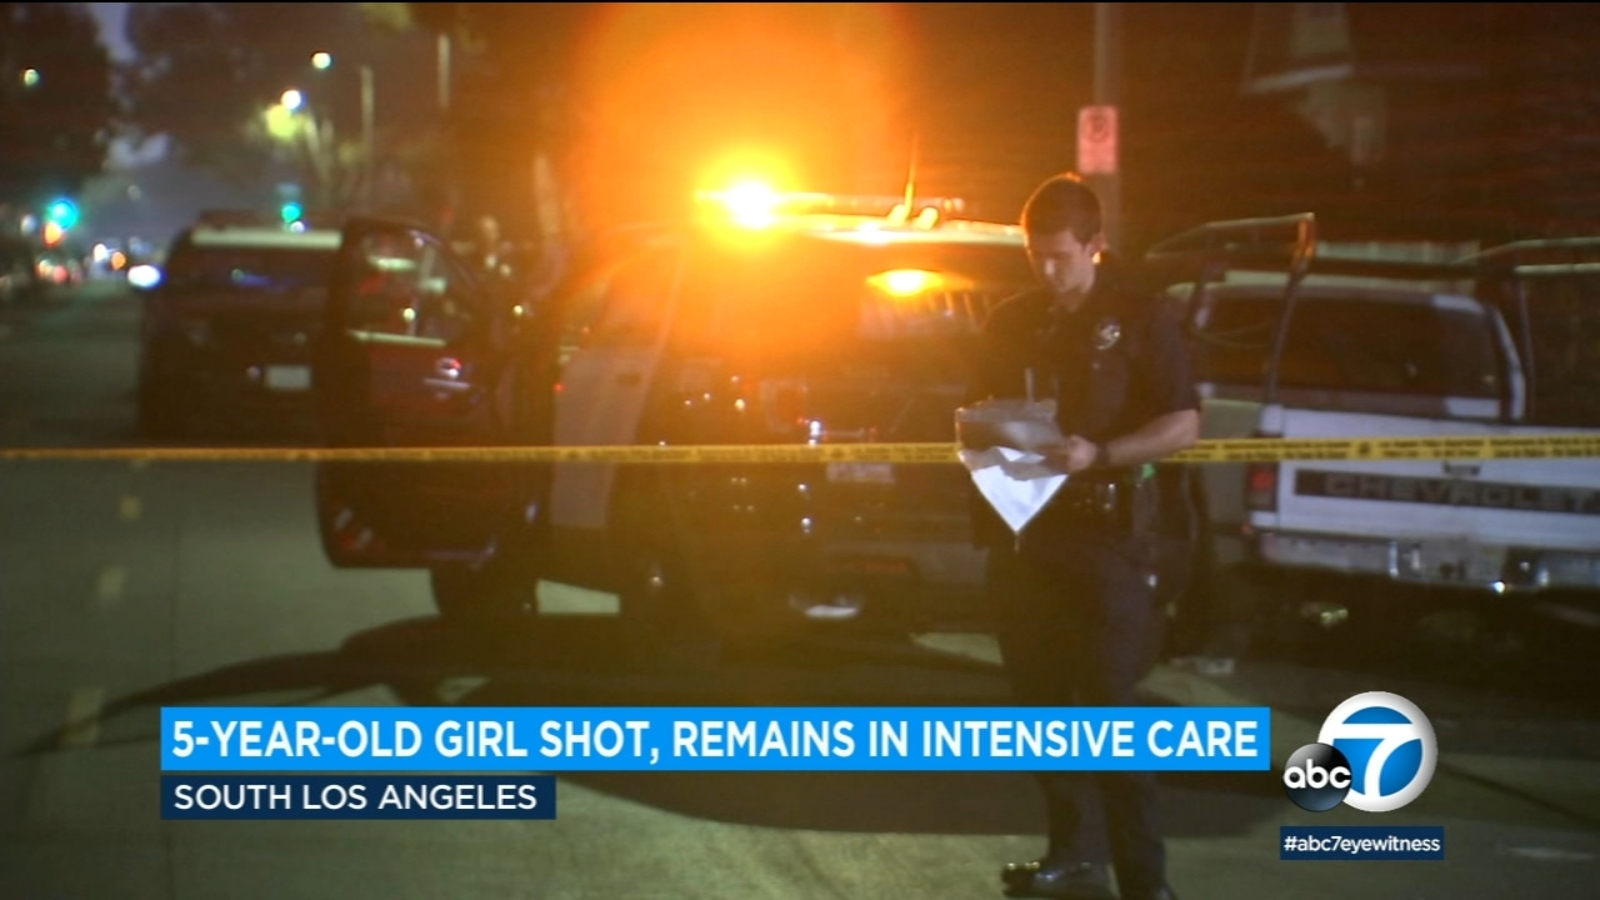 South LA child shot: Investigators looking at whether gun was properly stored